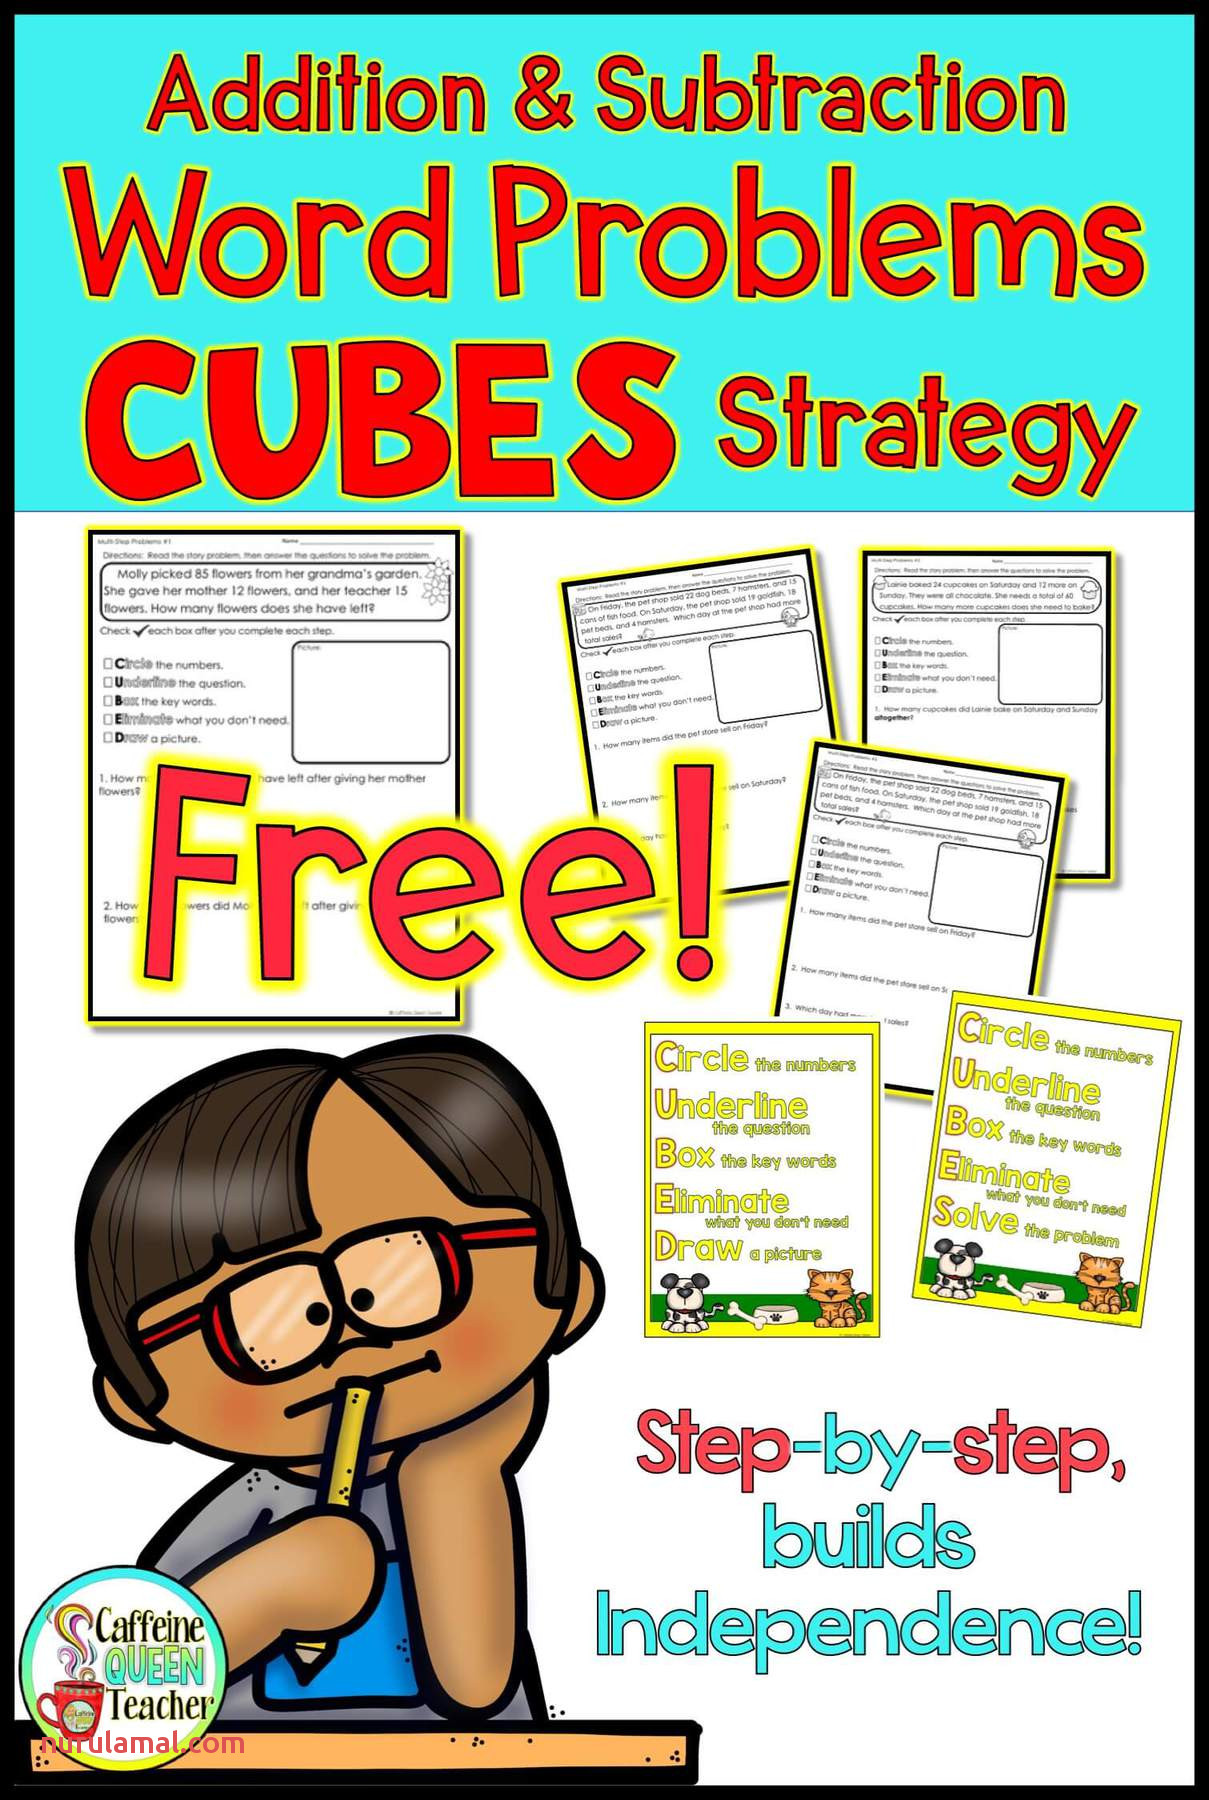 cubes word problem strategy worksheets for addition and subtraction image1